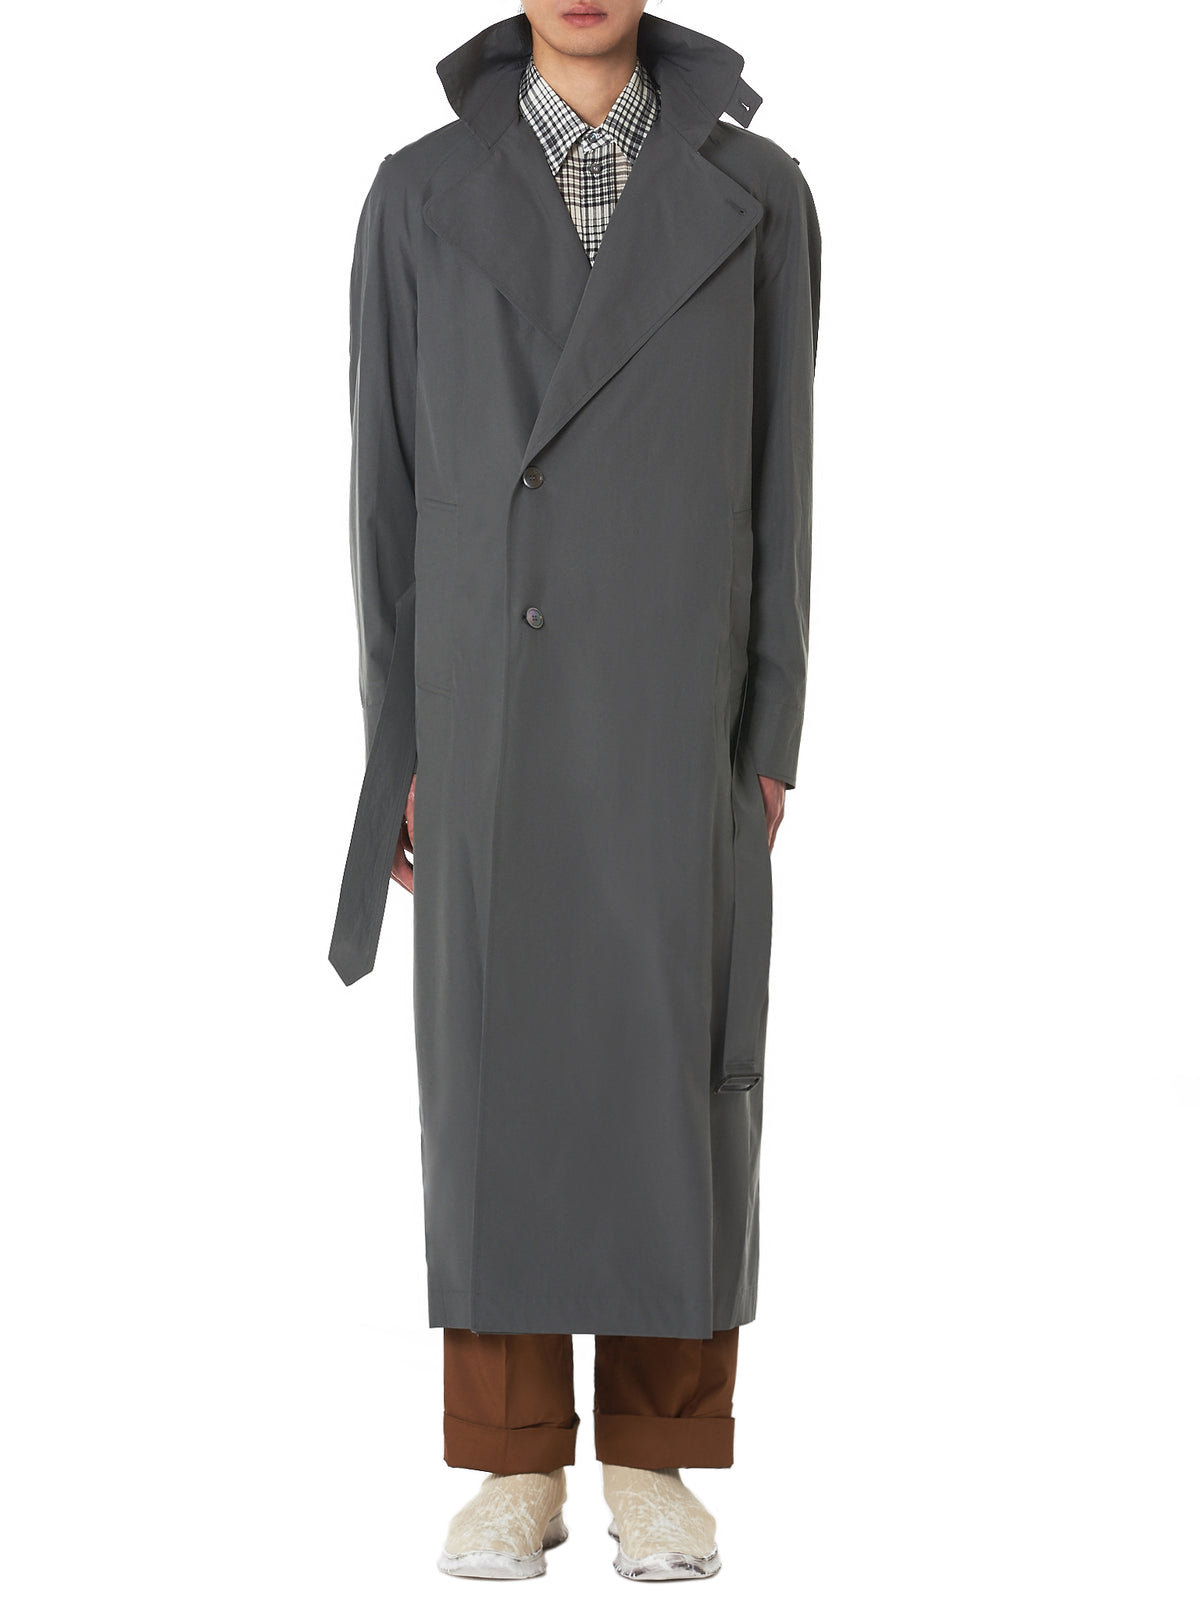 Federico Curradi Trench Coat - Hlorenzo Front